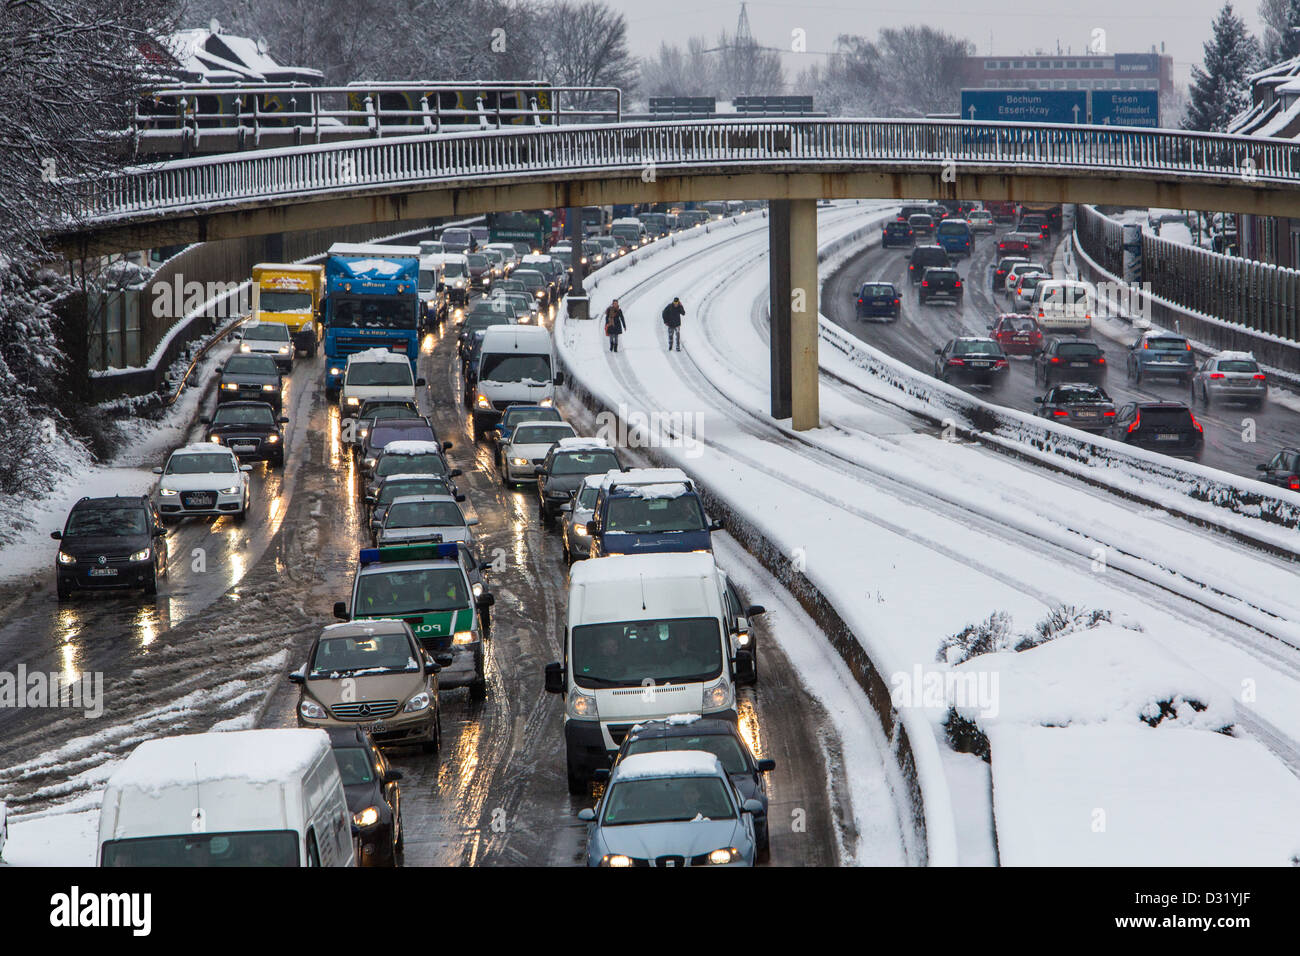 Traffic jam on German Autobahn, A40, after heavy snow fall. Hundreds of Kilometer of traffic jam during rush hour - Stock Image